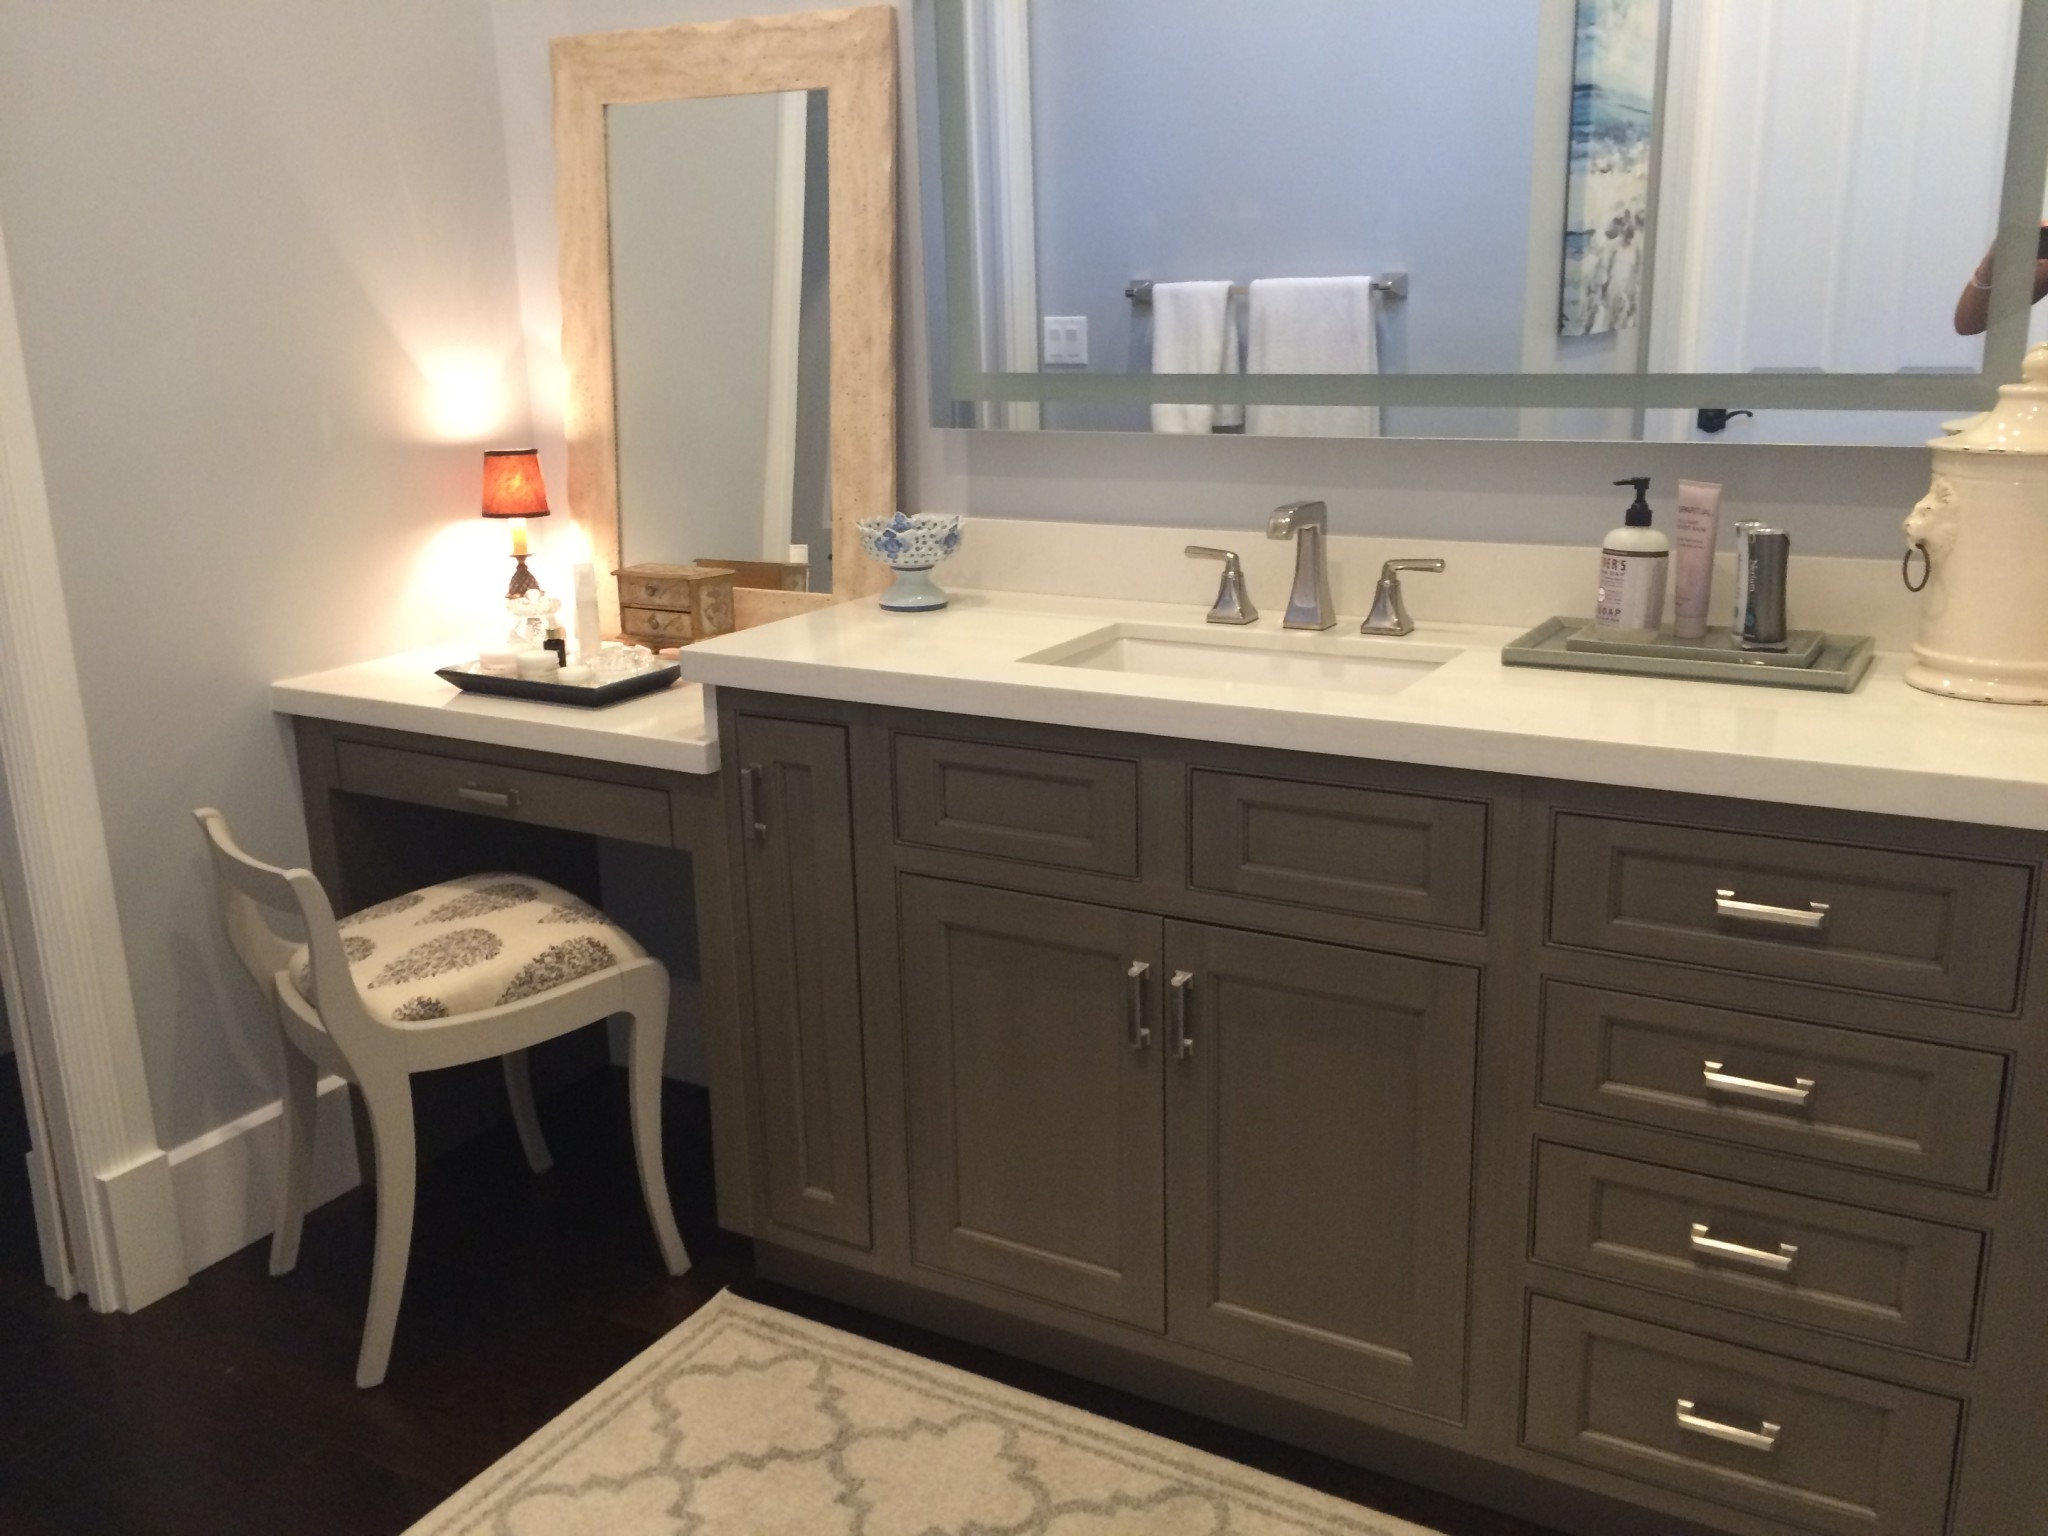 Painted Bathroom Cabinets Gray Painted Bathroom Vanity Waterview Kitchens